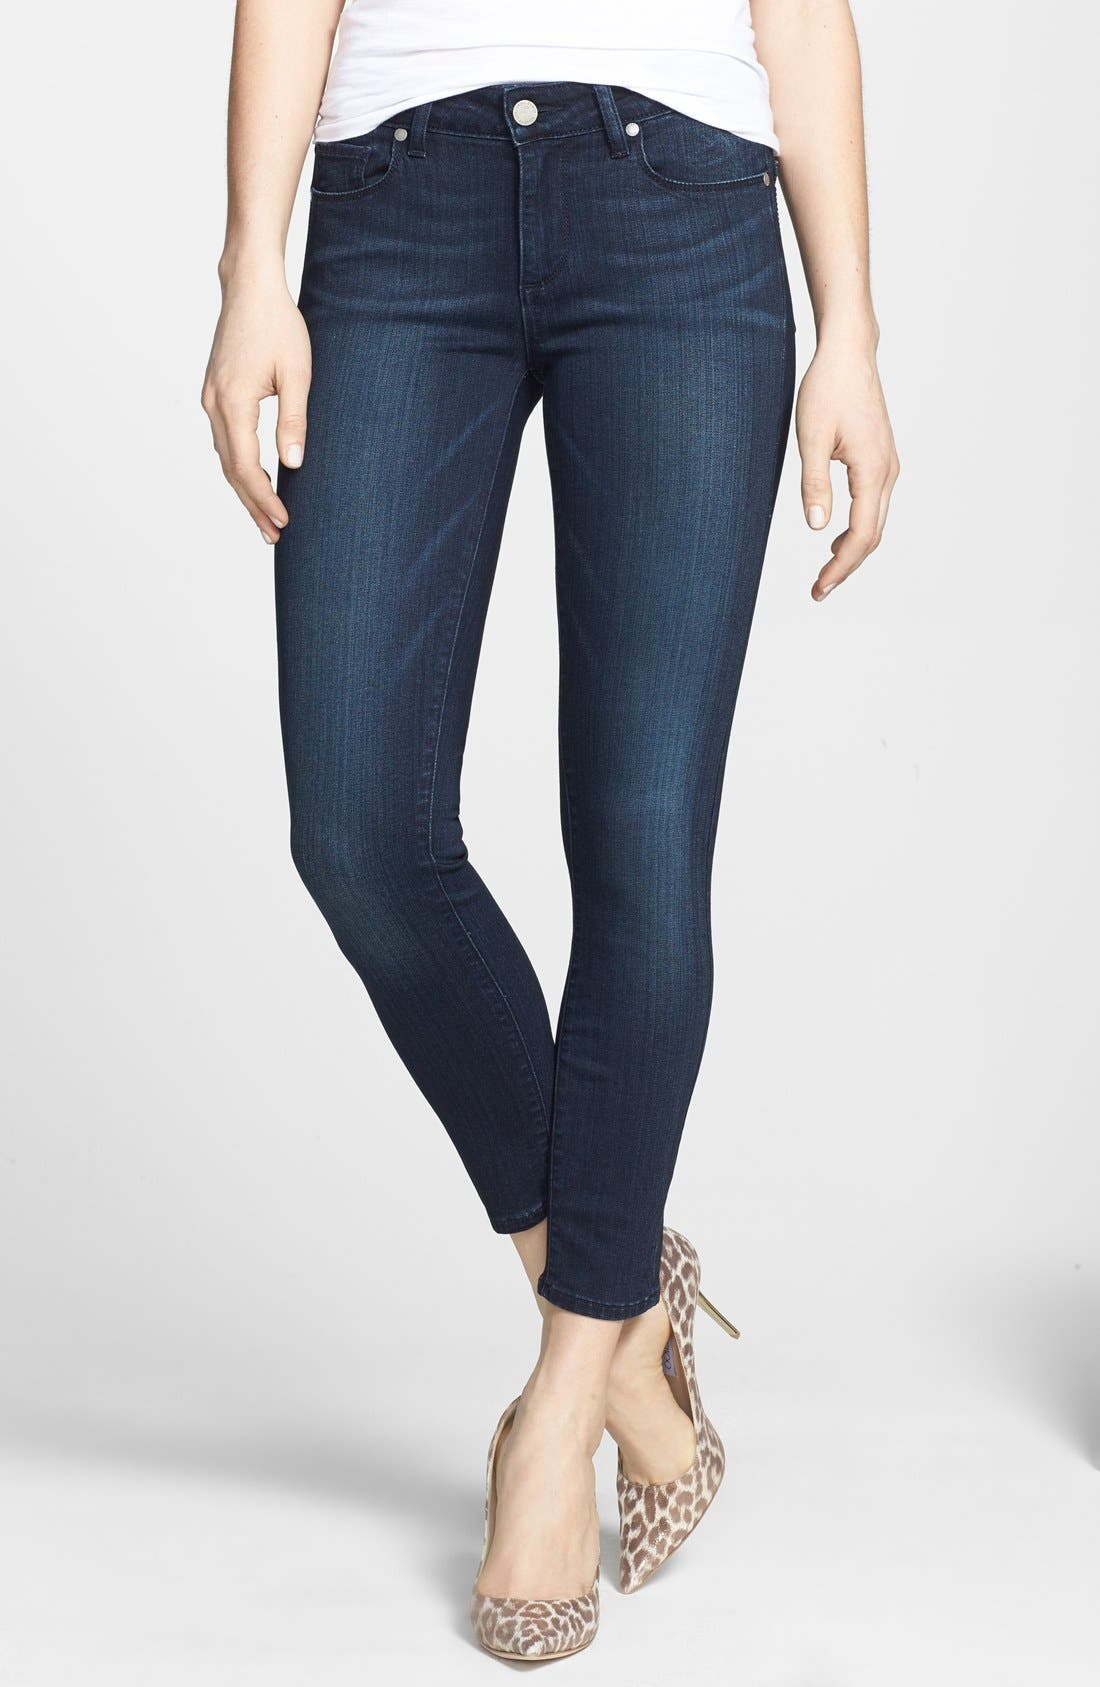 Alternate Image 1 Selected - PAIGE Transcend - Verdugo Crop Skinny Jeans (Midlake)